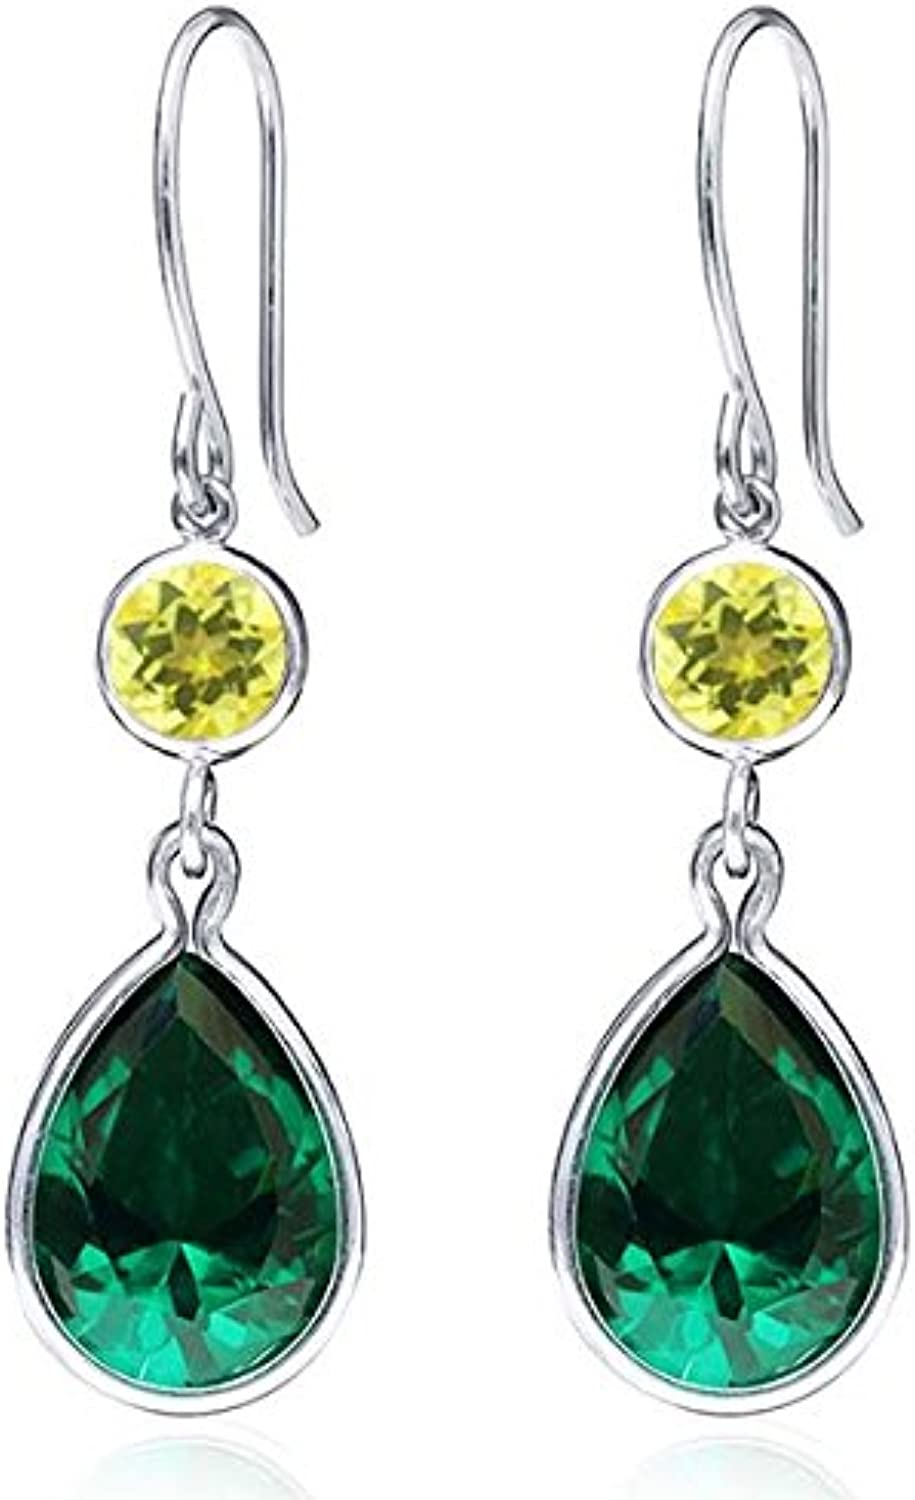 10.50 Ct Green Simulated Emerald Canary Mystic Topaz 925 Sterling Silver Earrings